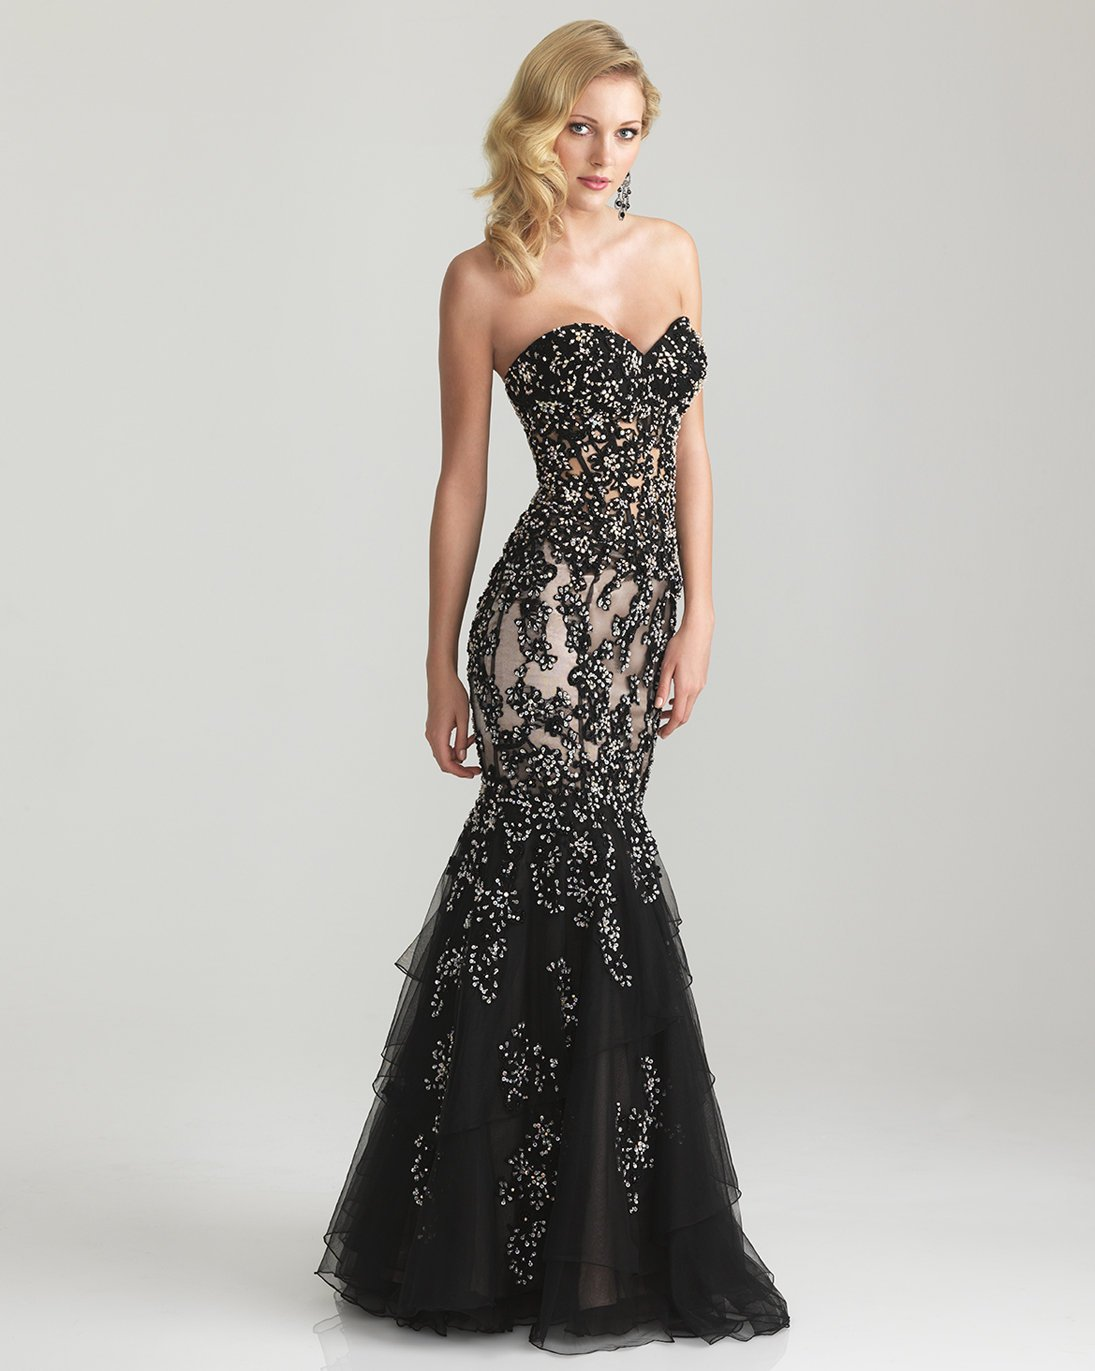 lace vintage prom dresses - photo #40